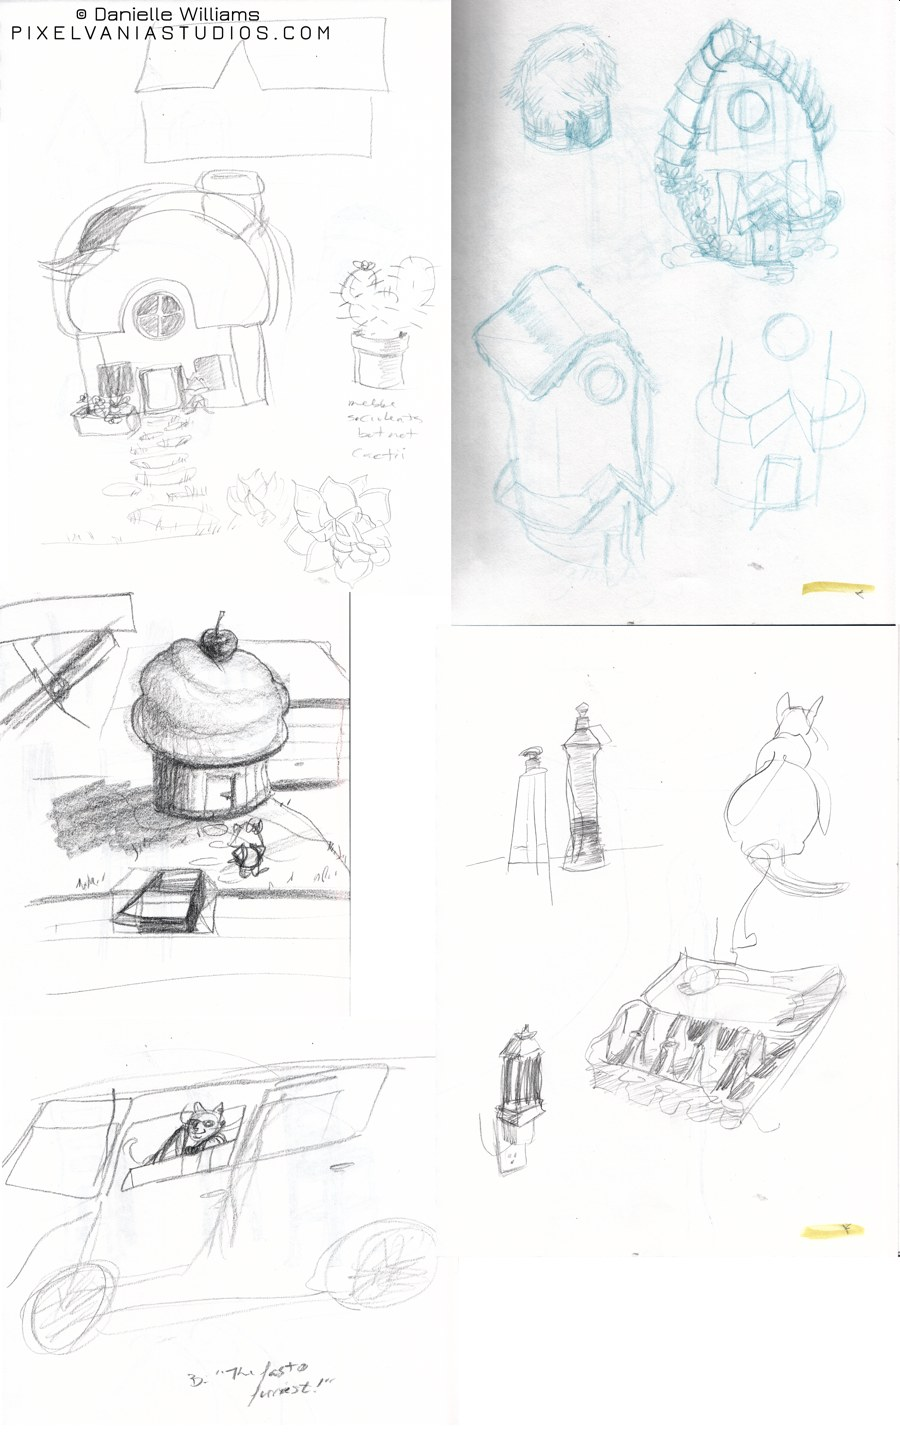 A collection of drawings, including cupcake houses and Pixel J Cat ridin' in a car.